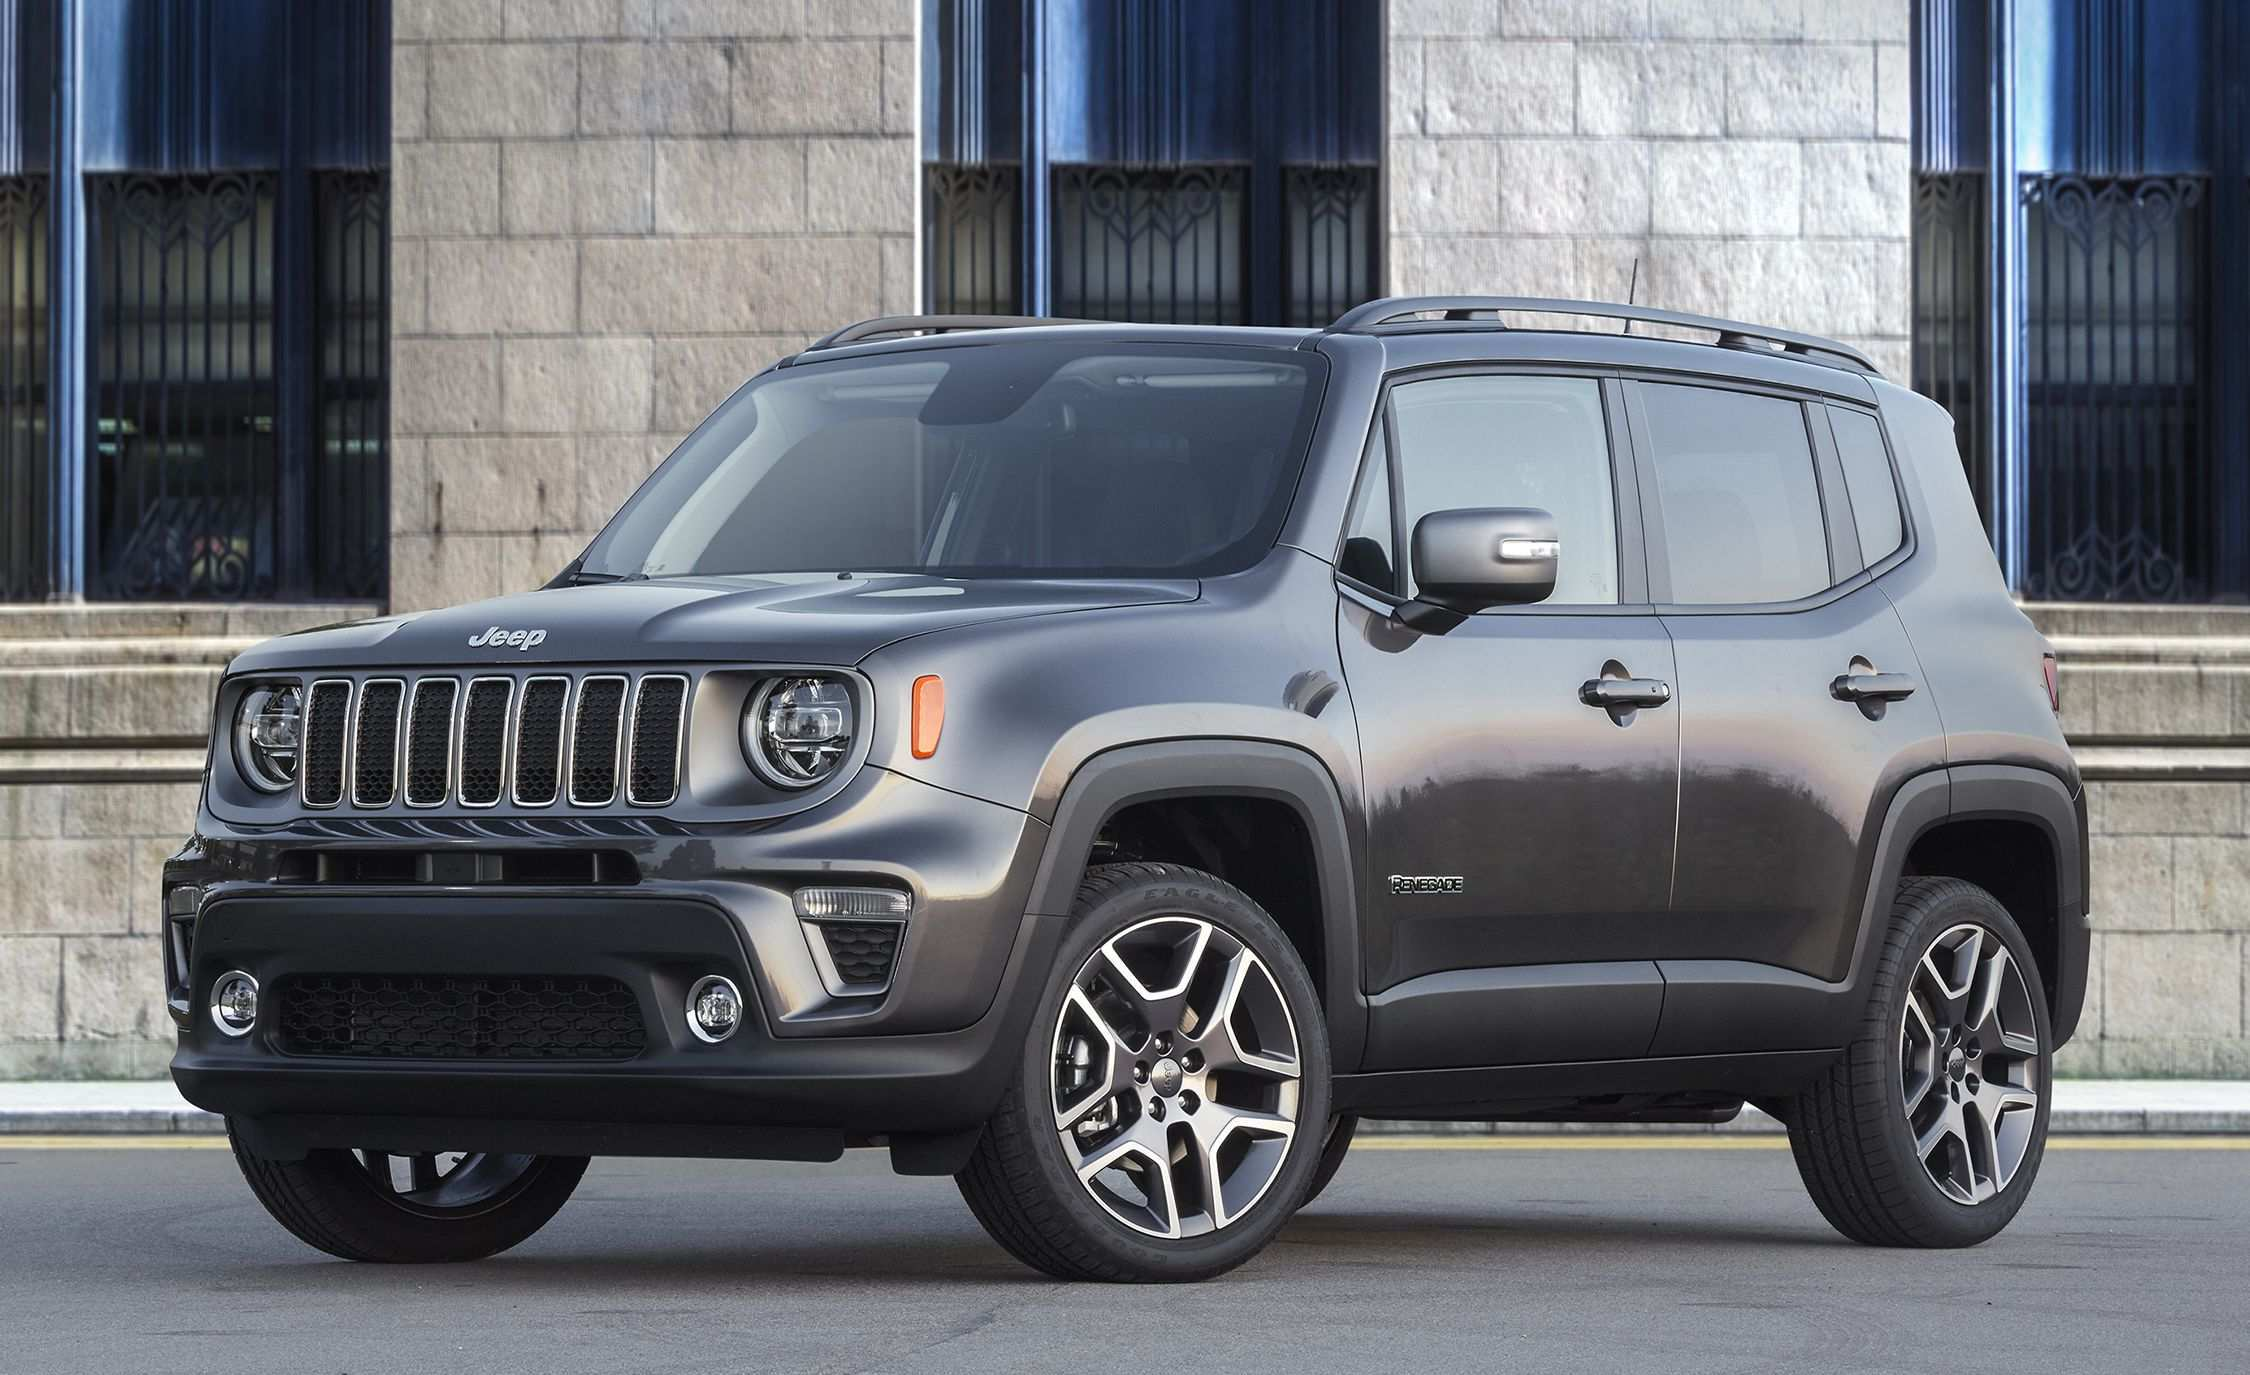 73 All New Jeep Renegade 2020 Style for Jeep Renegade 2020